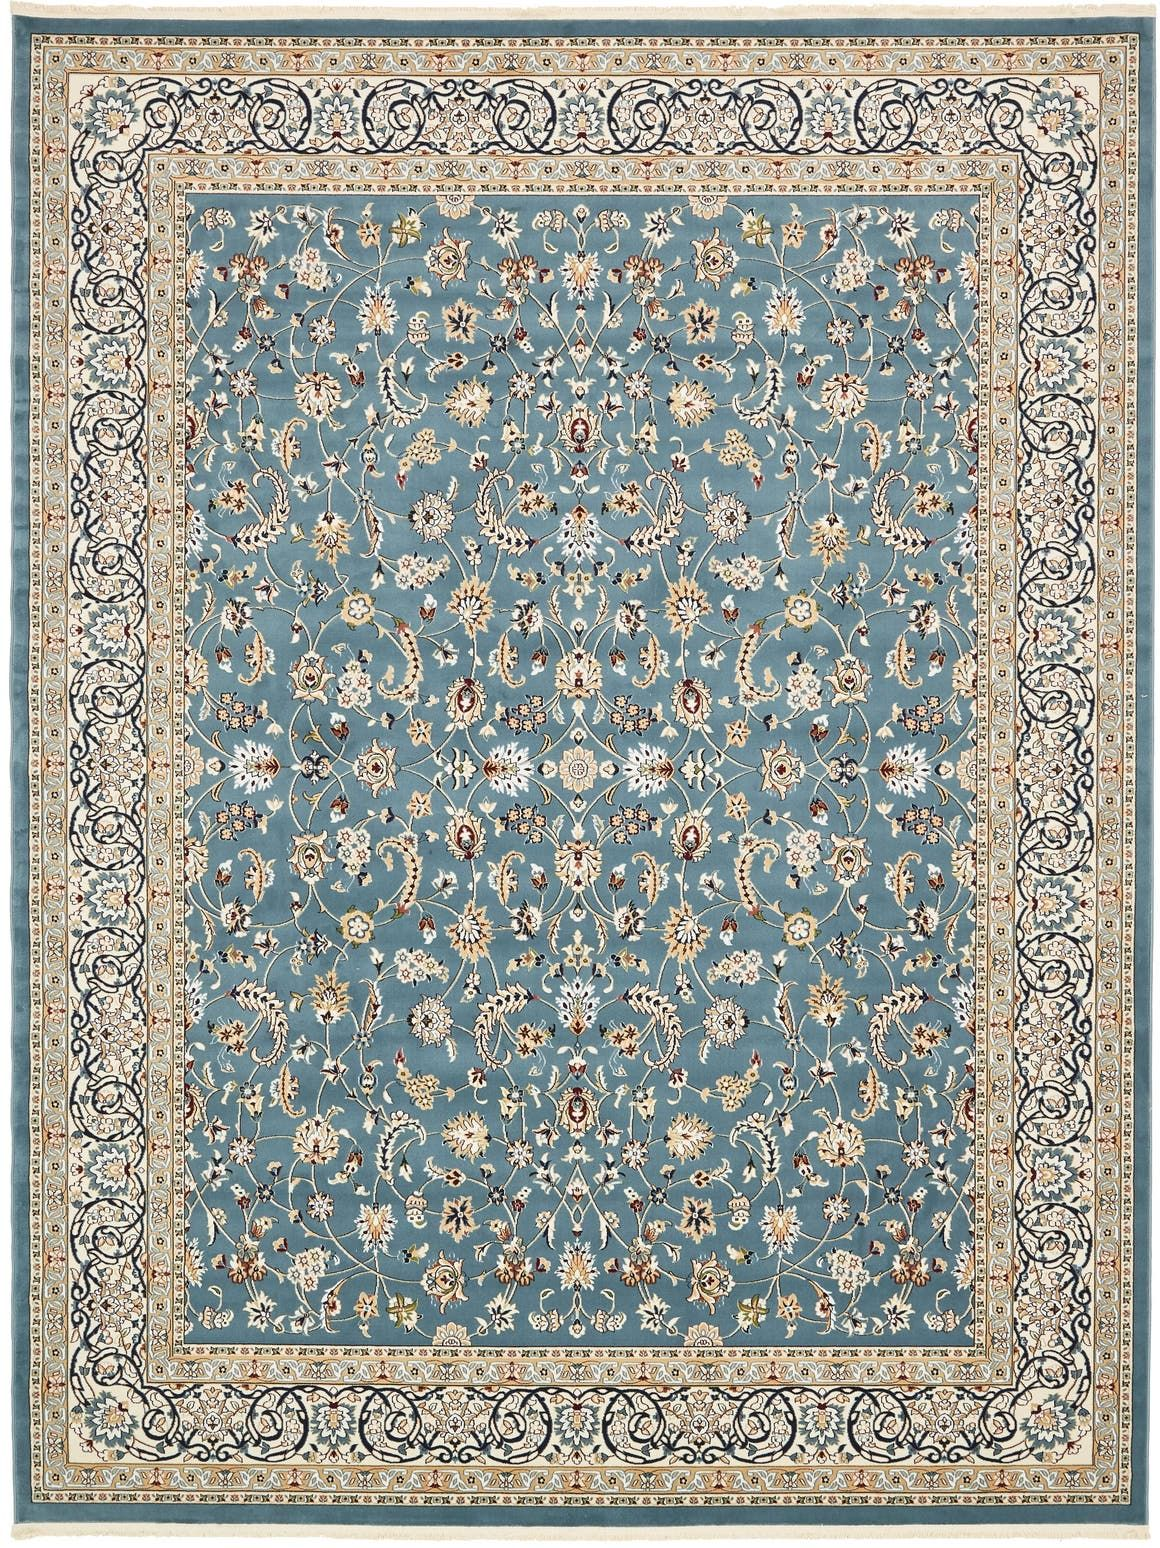 10 X 13 Nain Design Rug Main Image In 2020 Area Rugs Unique Loom Blue Area Rugs